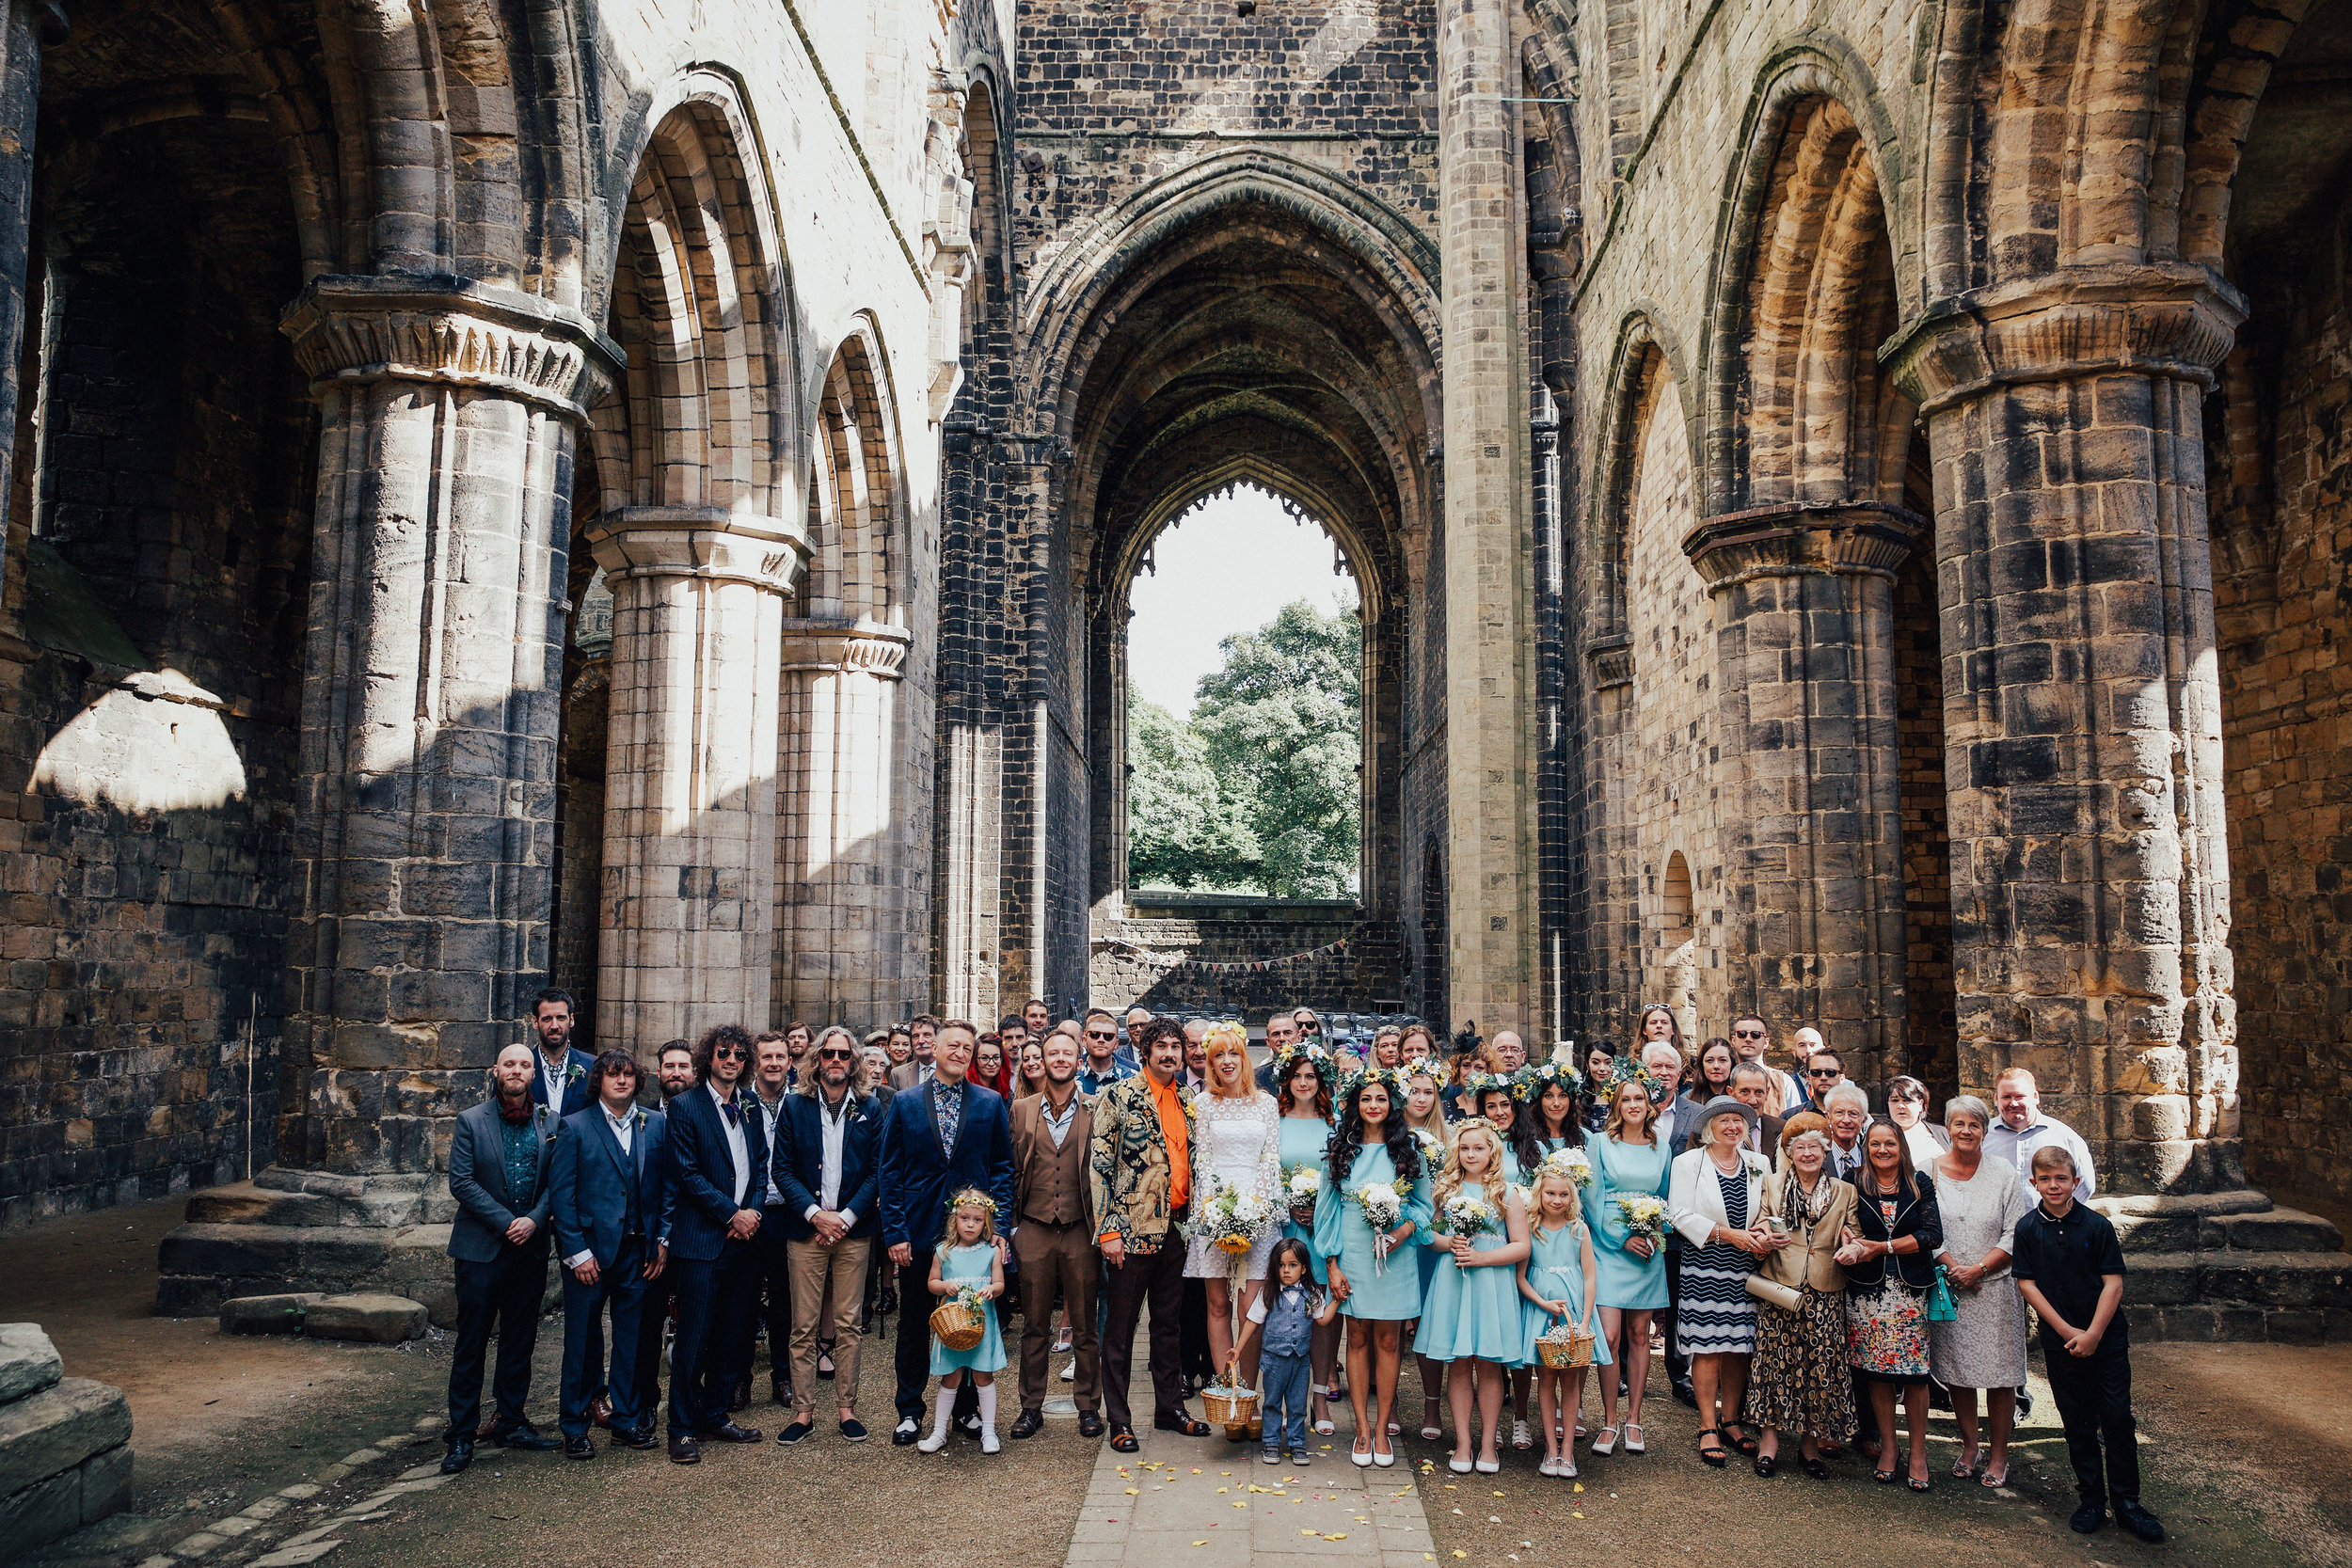 ALTERNATIVE_WEDDING_PHOTOGRAPHY_LEEDS_UK_PJ_PHILLIPS_PHOTOGRAPHY_83.jpg